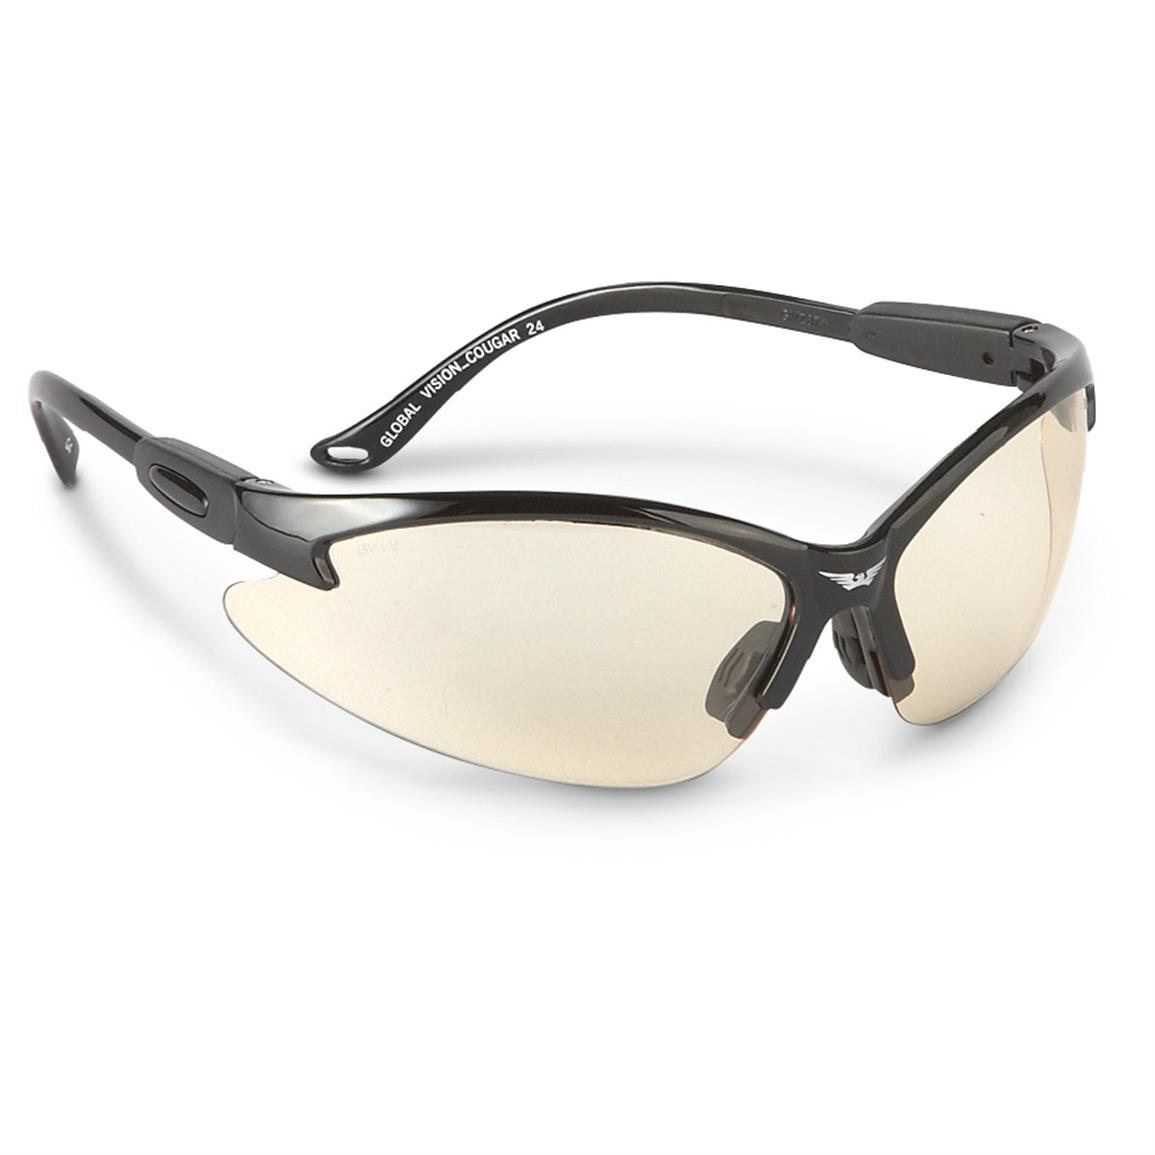 Global Vision Cougar 24 Photochromic Safety Sunglasses